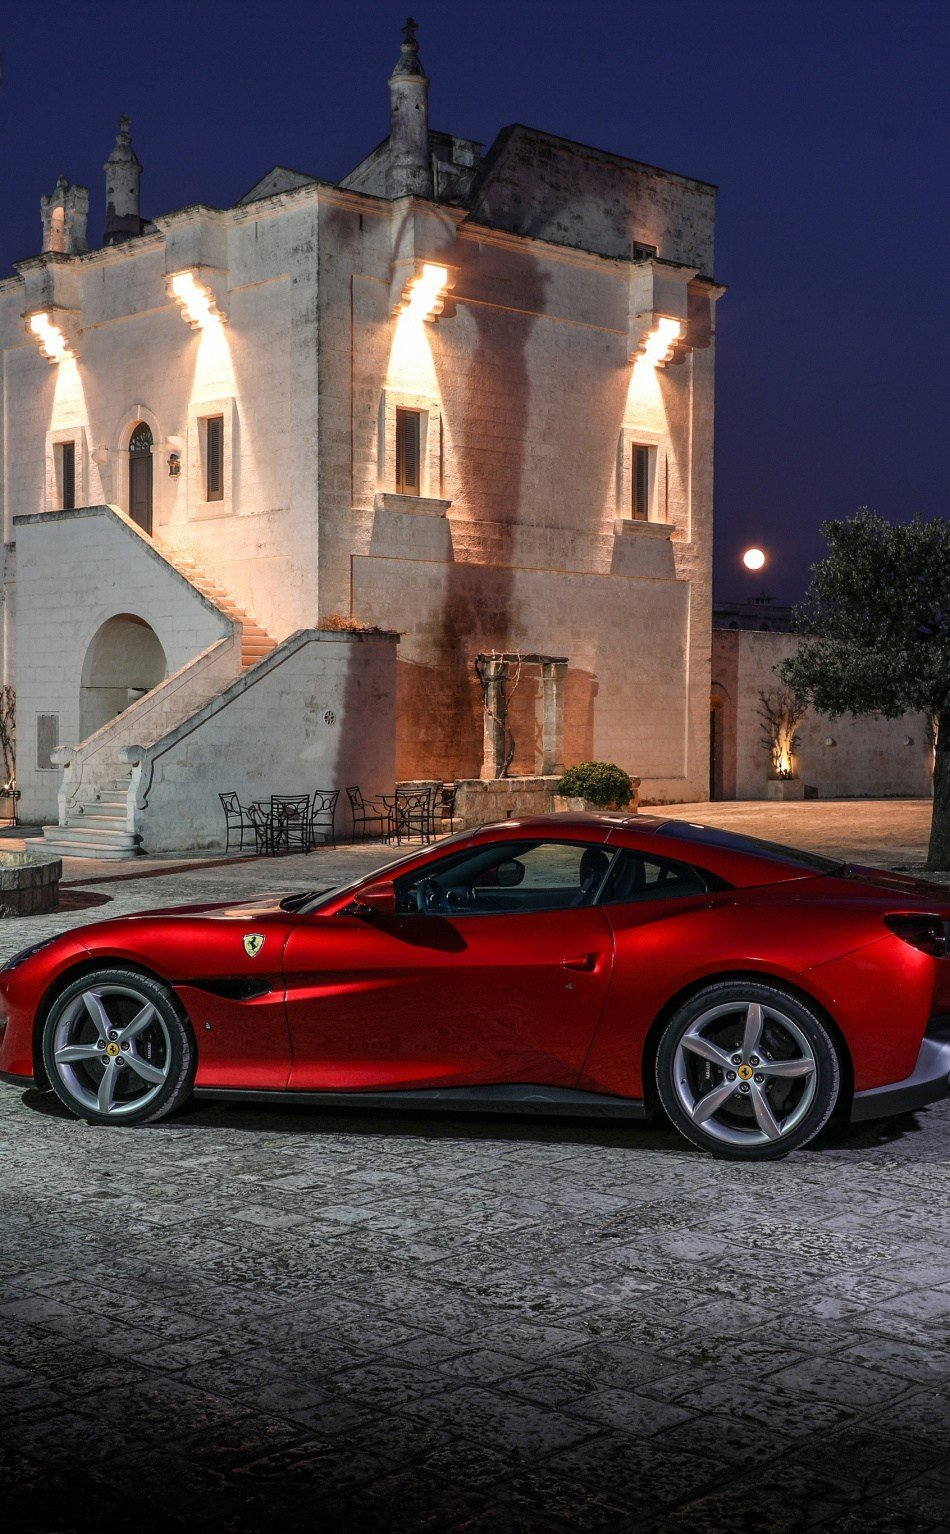 New Download 950X1534 Wallpaper 2018 Red Car Ferrari On This Month